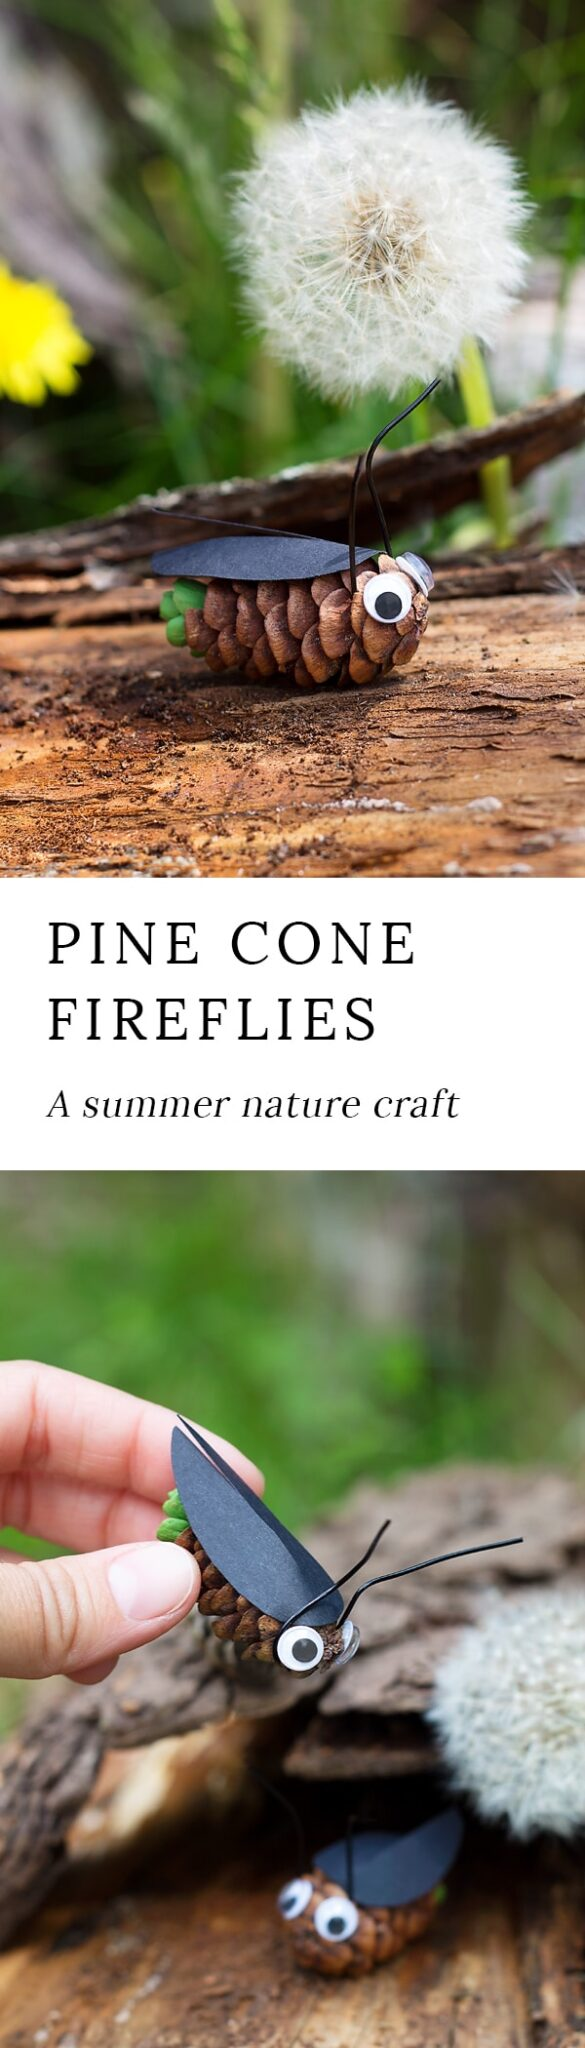 These Pine Cone Fireflies are such a sweet and fun summer nature craft for kids!